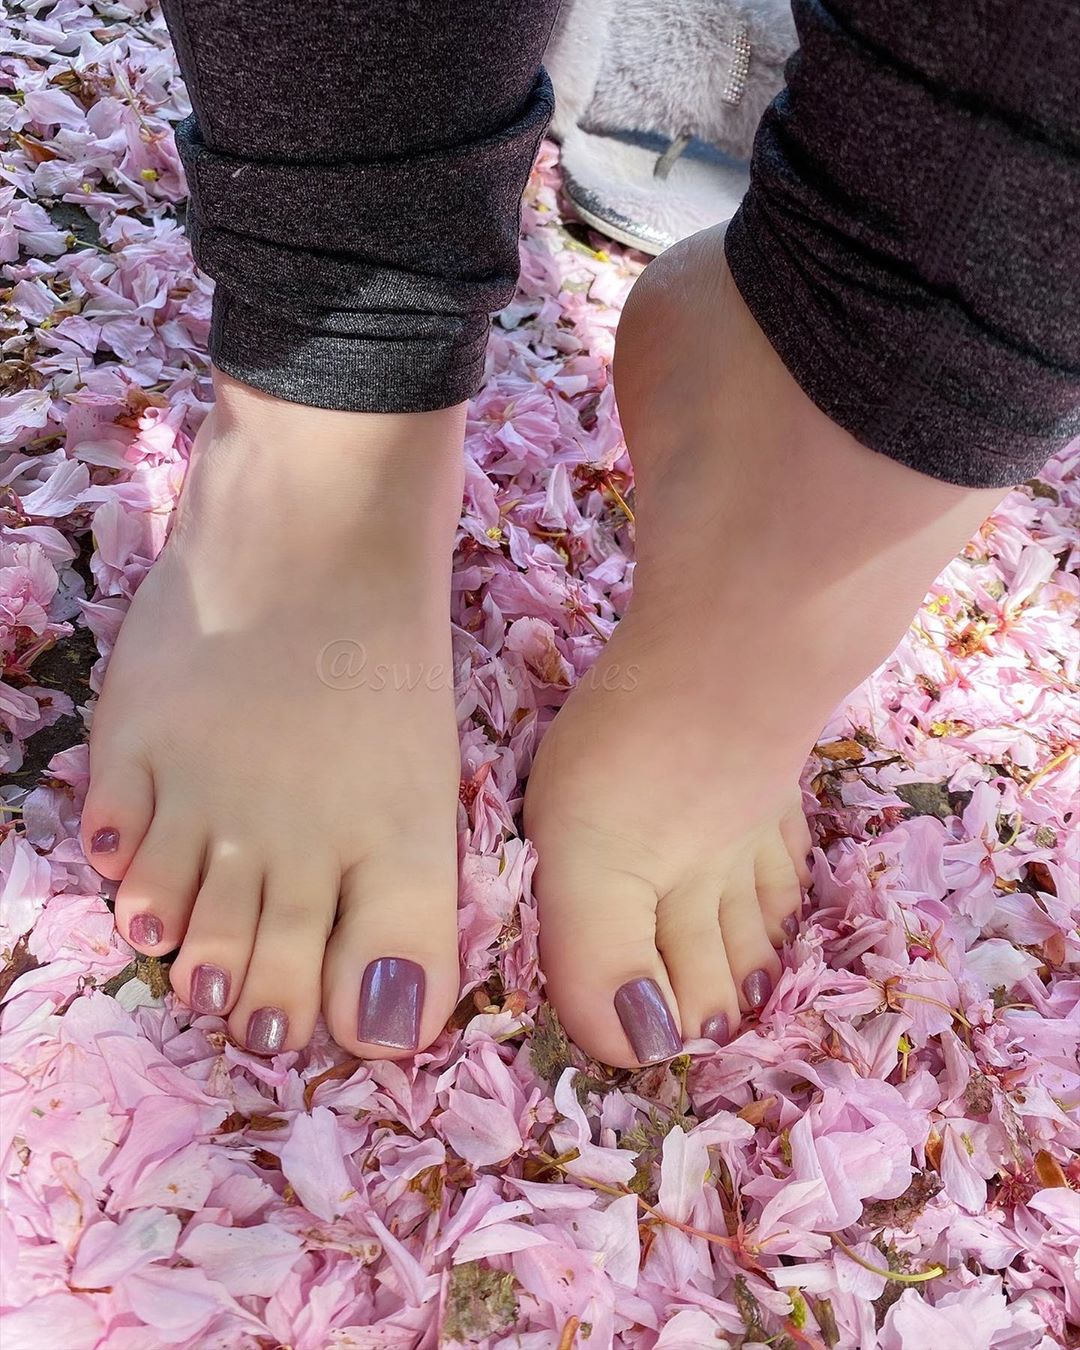 American Woman Earns $6,000 Per Month By Selling Pictures of Her Feet Online